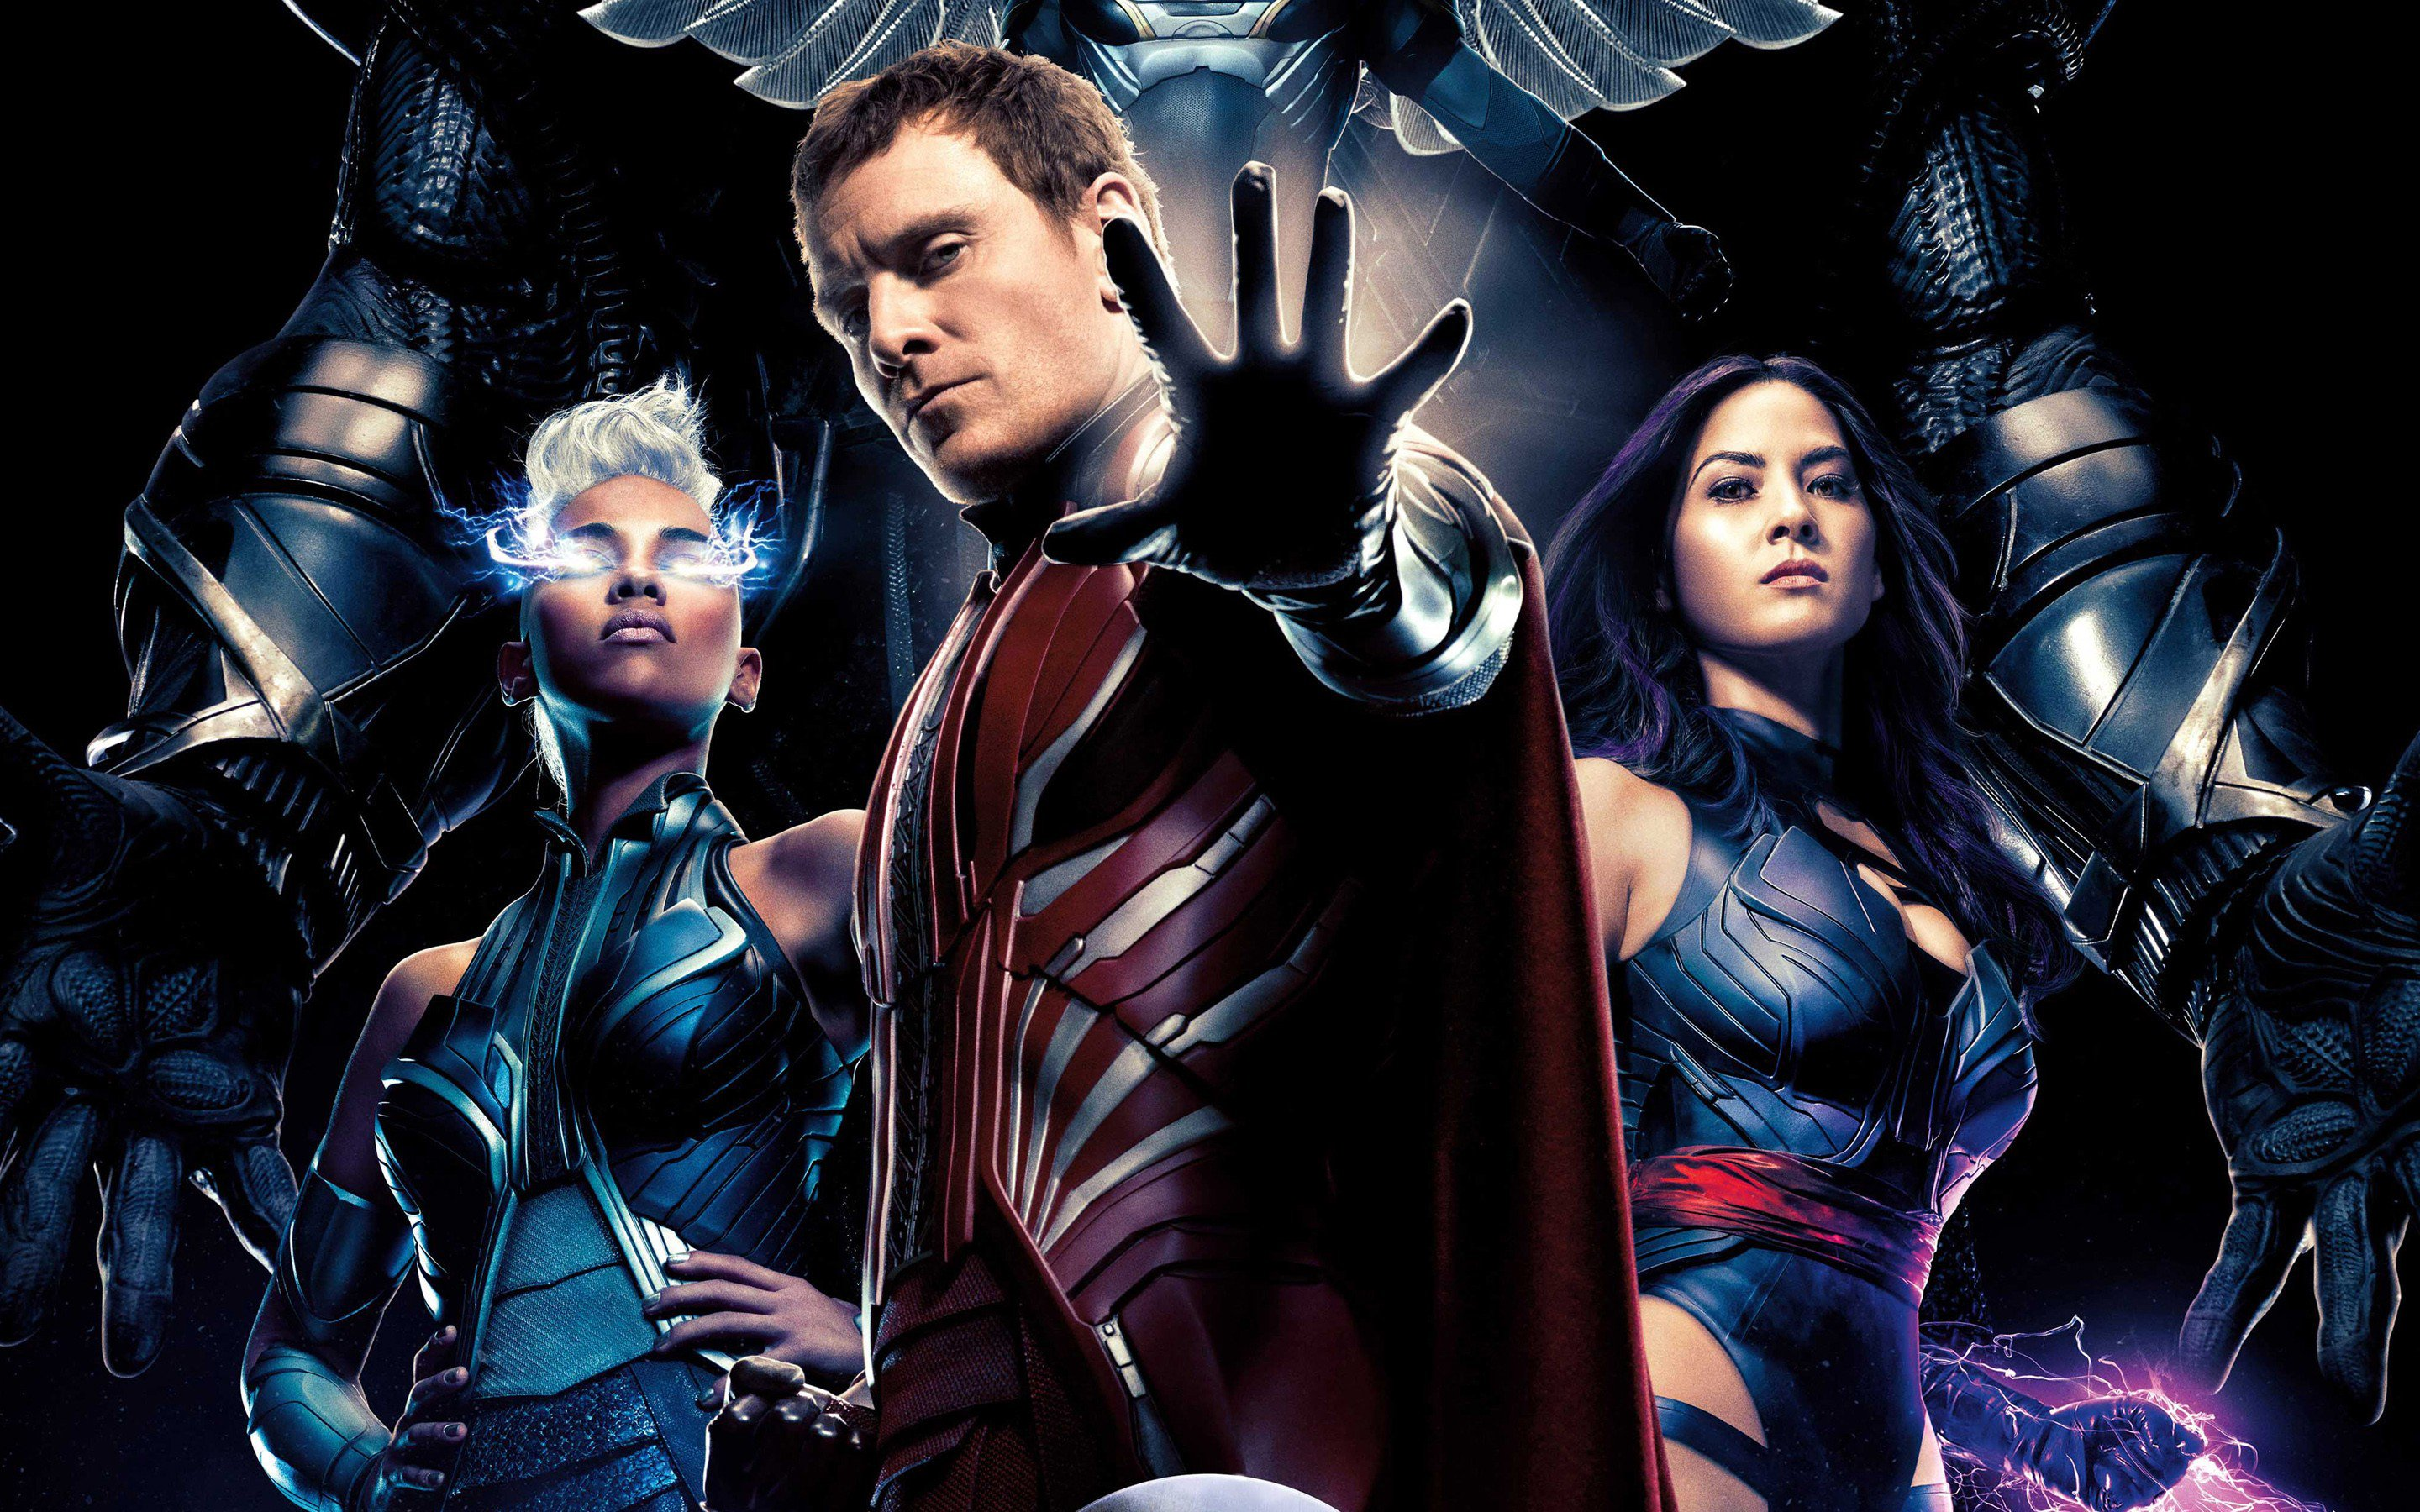 x men apocalypse 2016, hd movies, 4k wallpapers, images, backgrounds